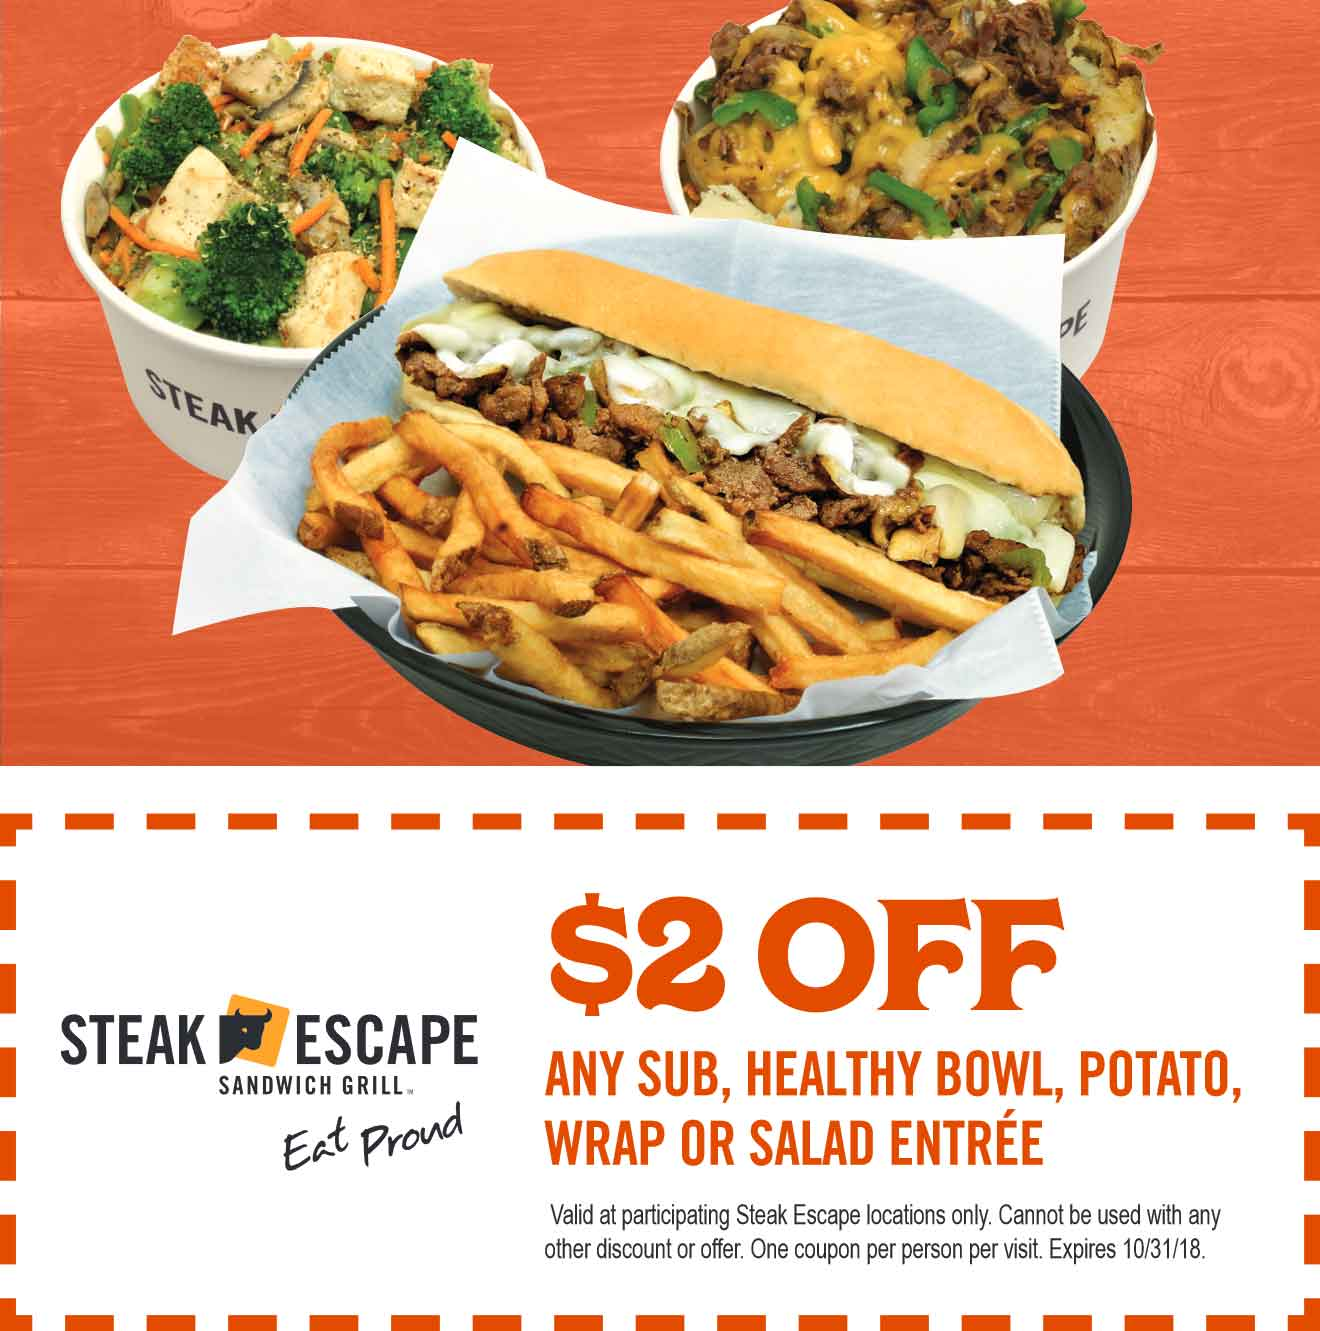 SteakEscape.com Promo Coupon $2 off subs, bowls, wraps & salads at Steak Escape restaurants